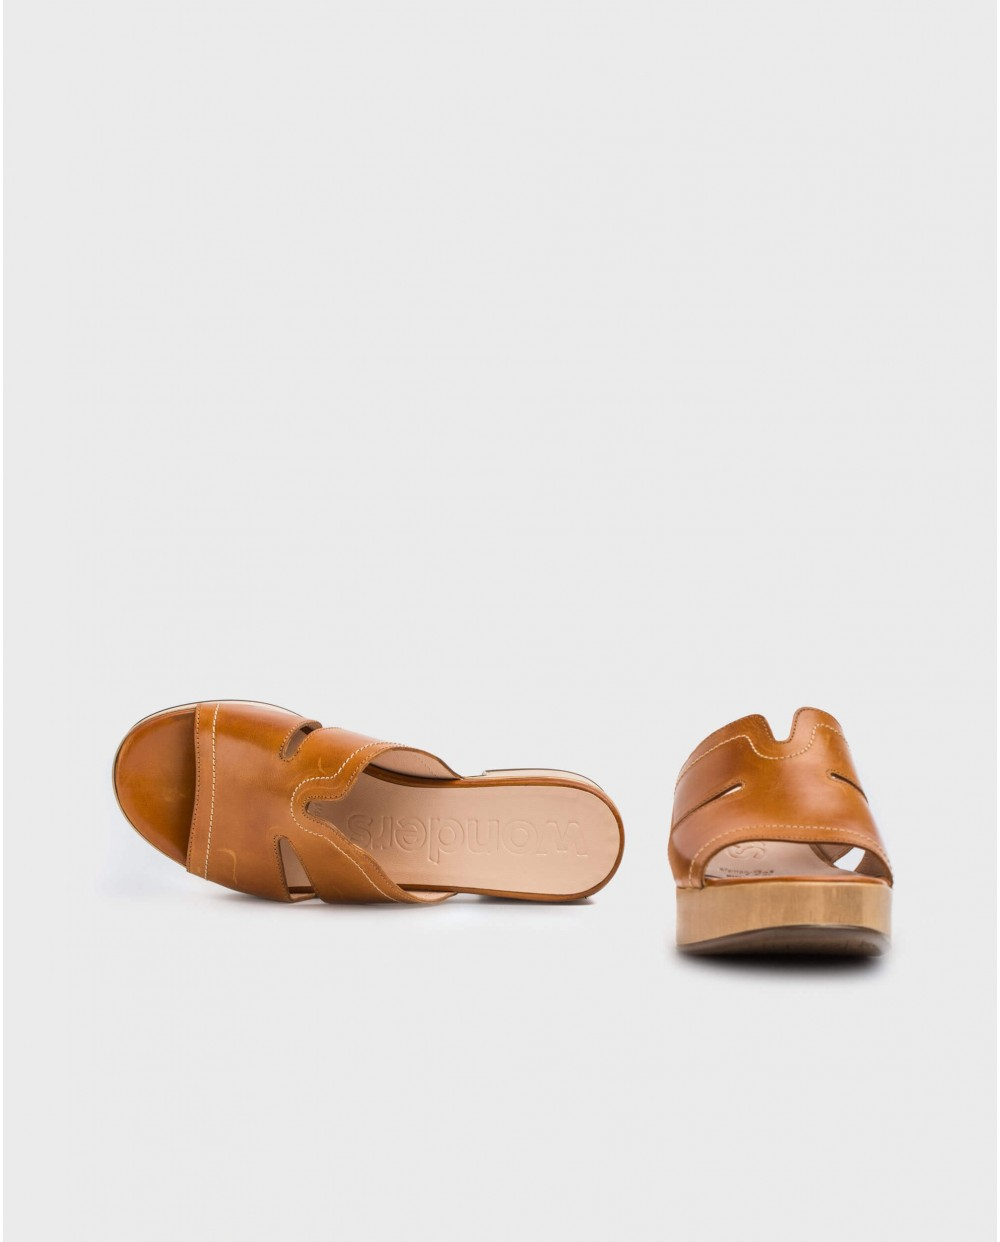 Wonders-Sandals-Sandal with side opening